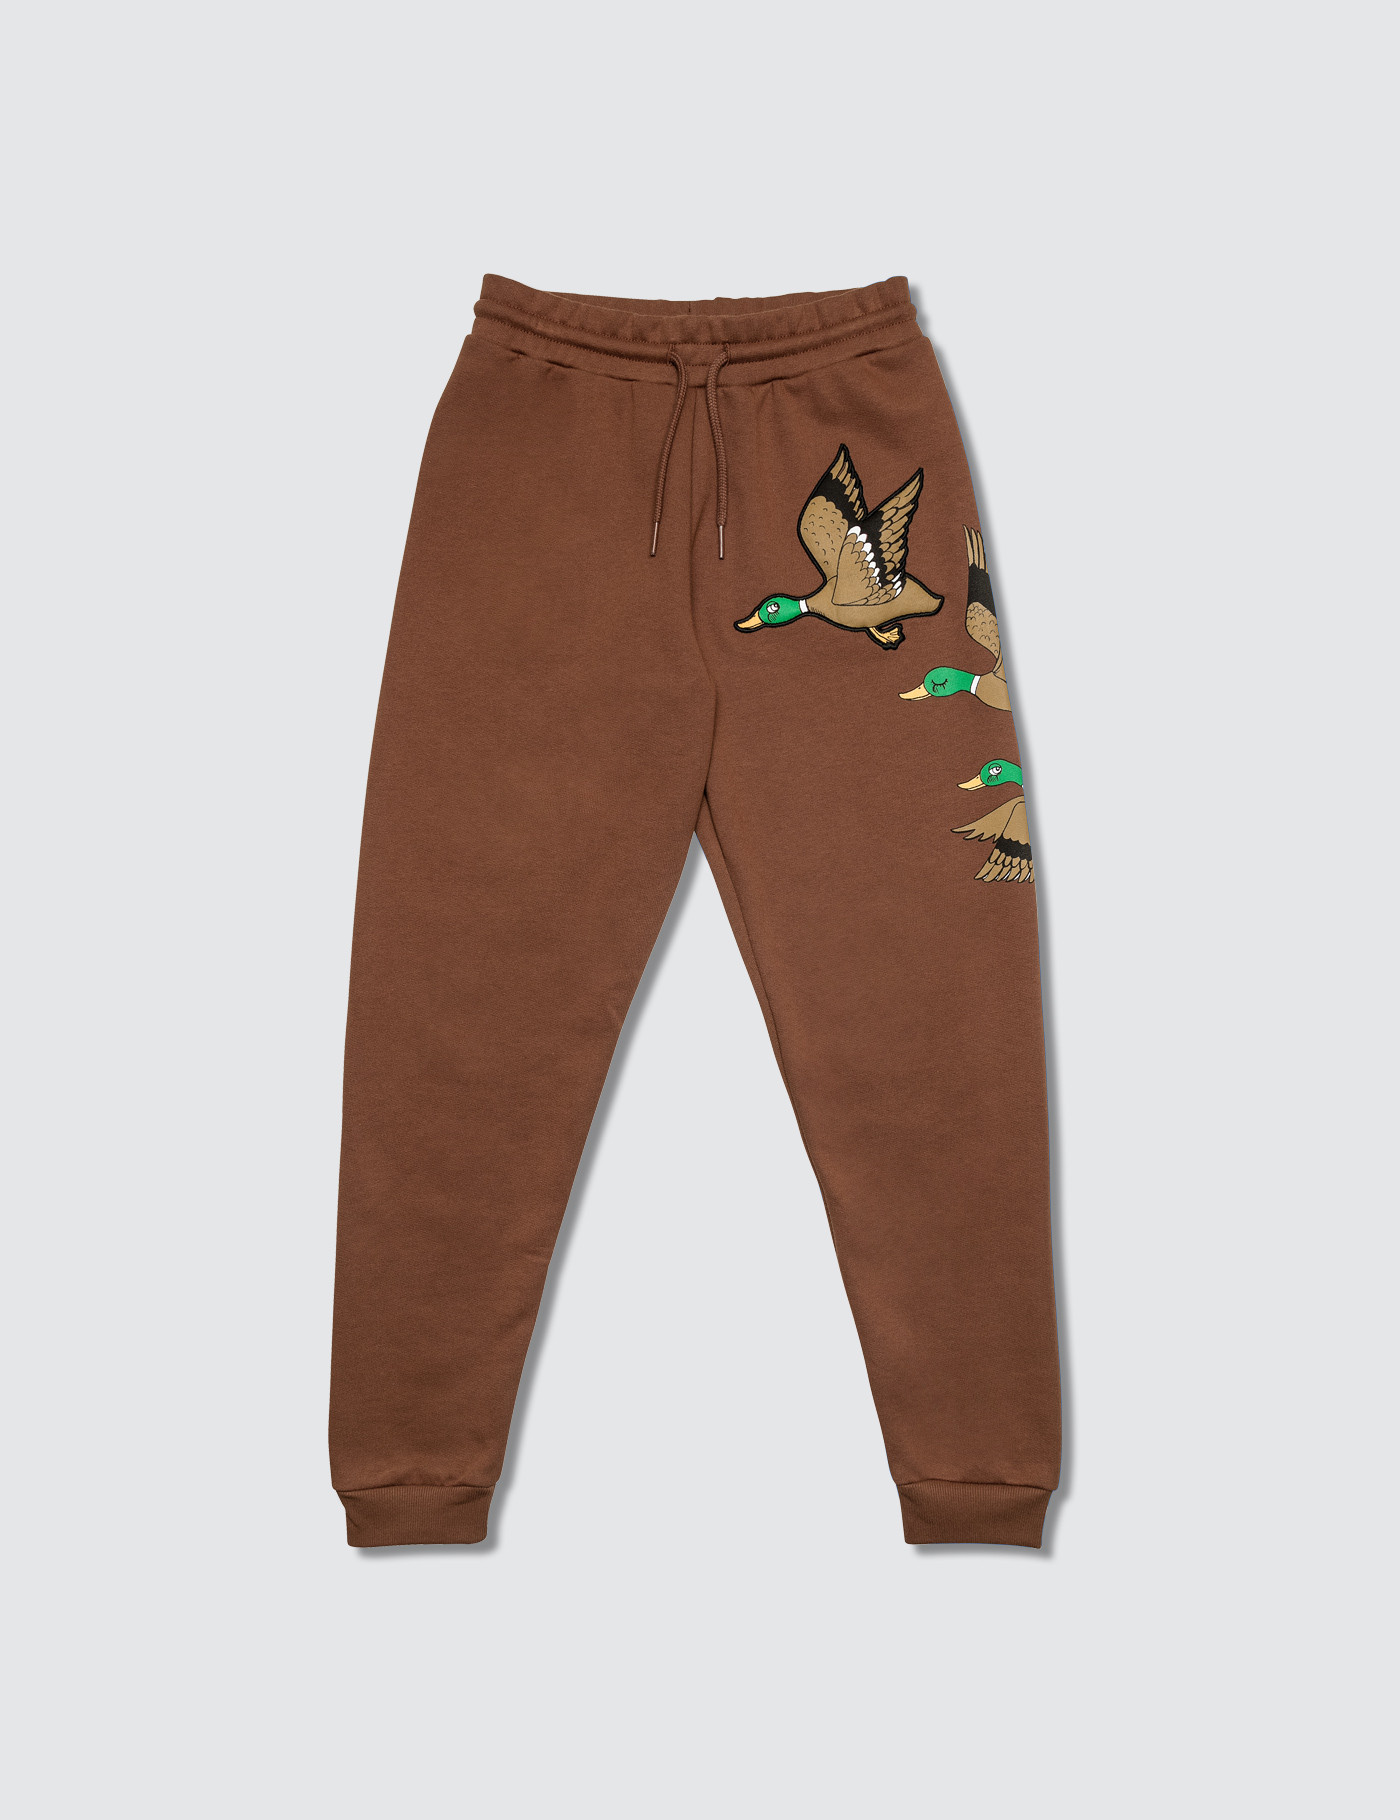 Duck Sp Sweatpants